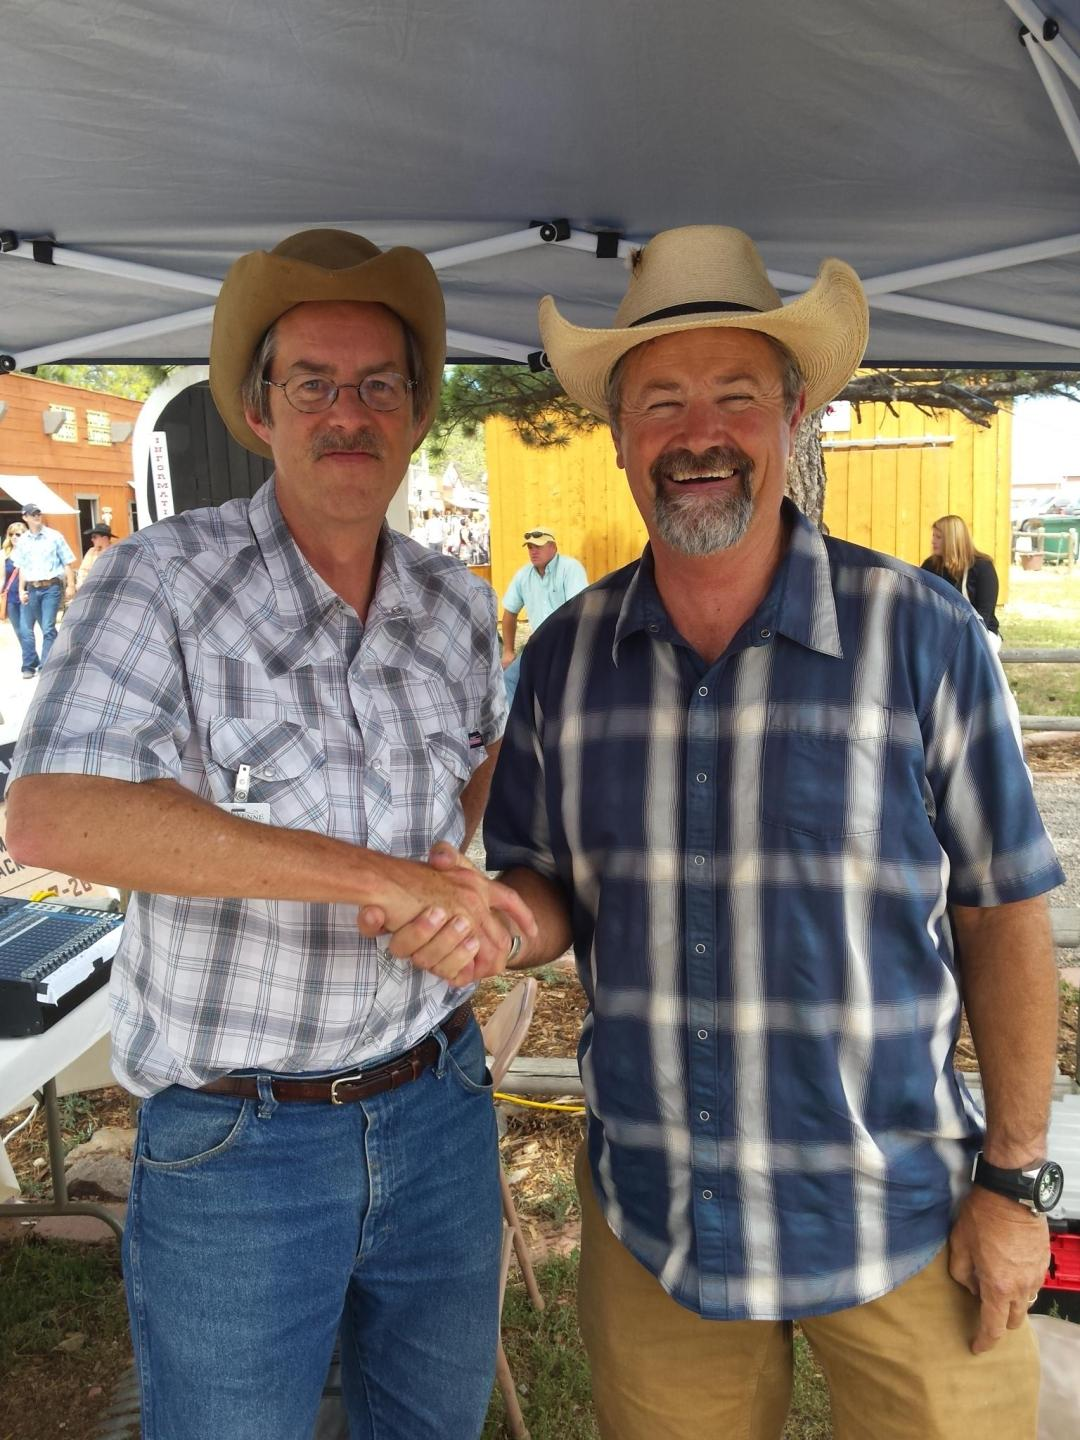 Grady Kirkpatrick with a long time listener and friend Wayne Welsh from Cheyenne.